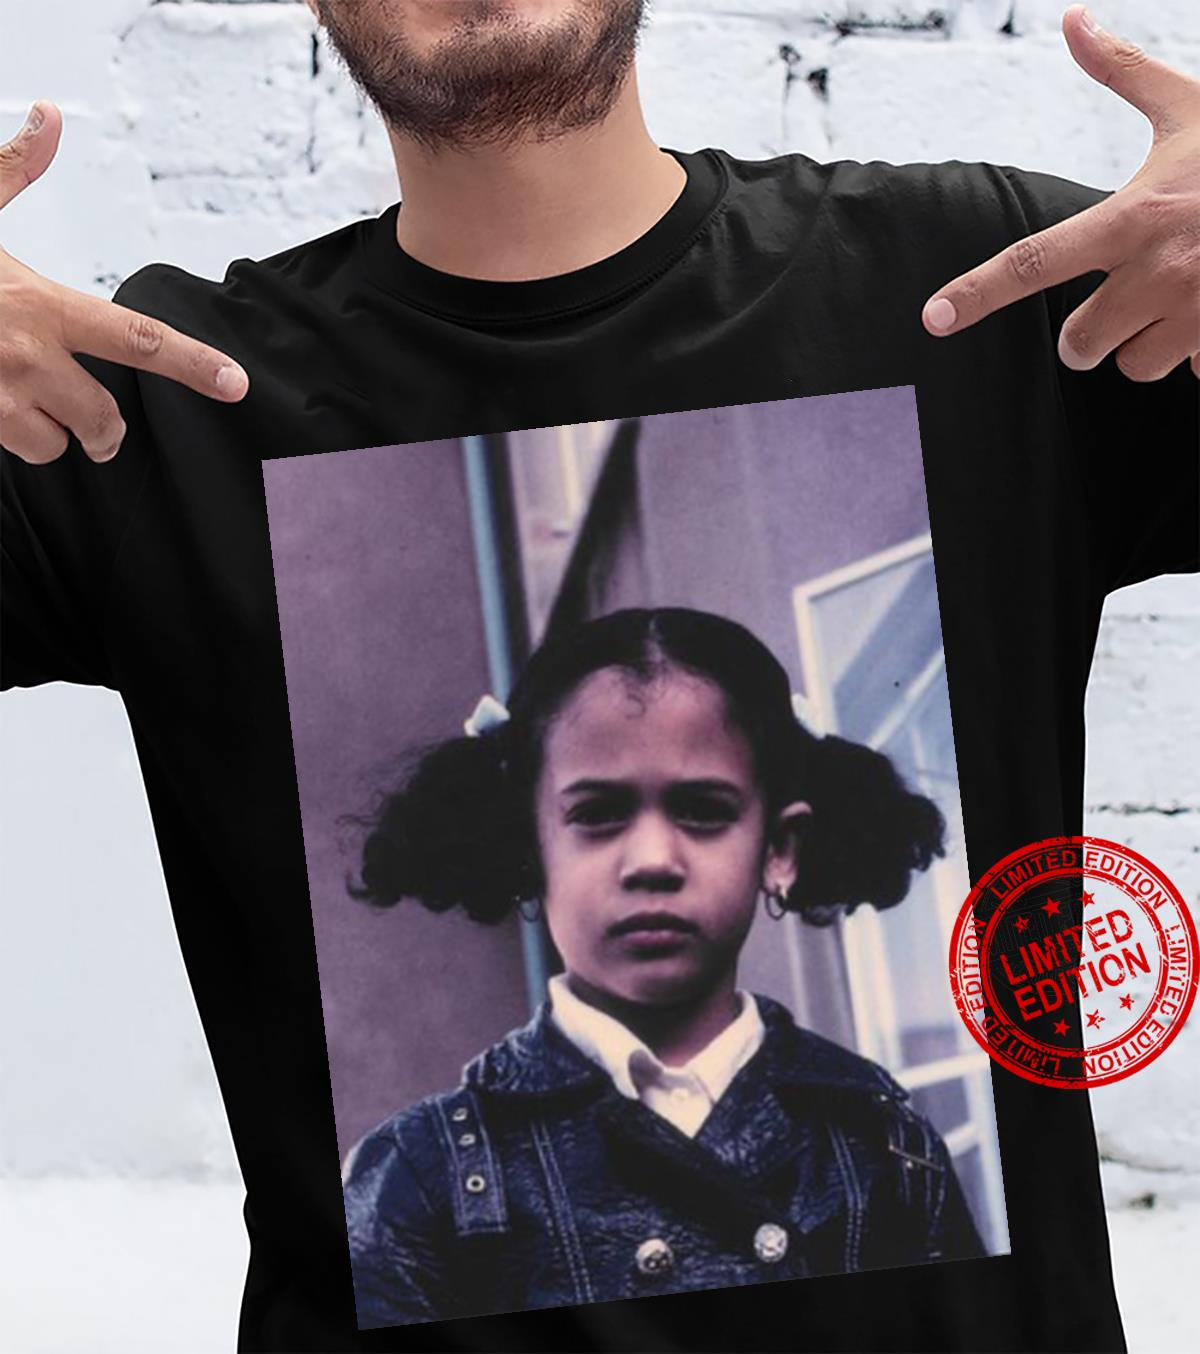 THAT LITTLE GIRL WAS ME Shirt